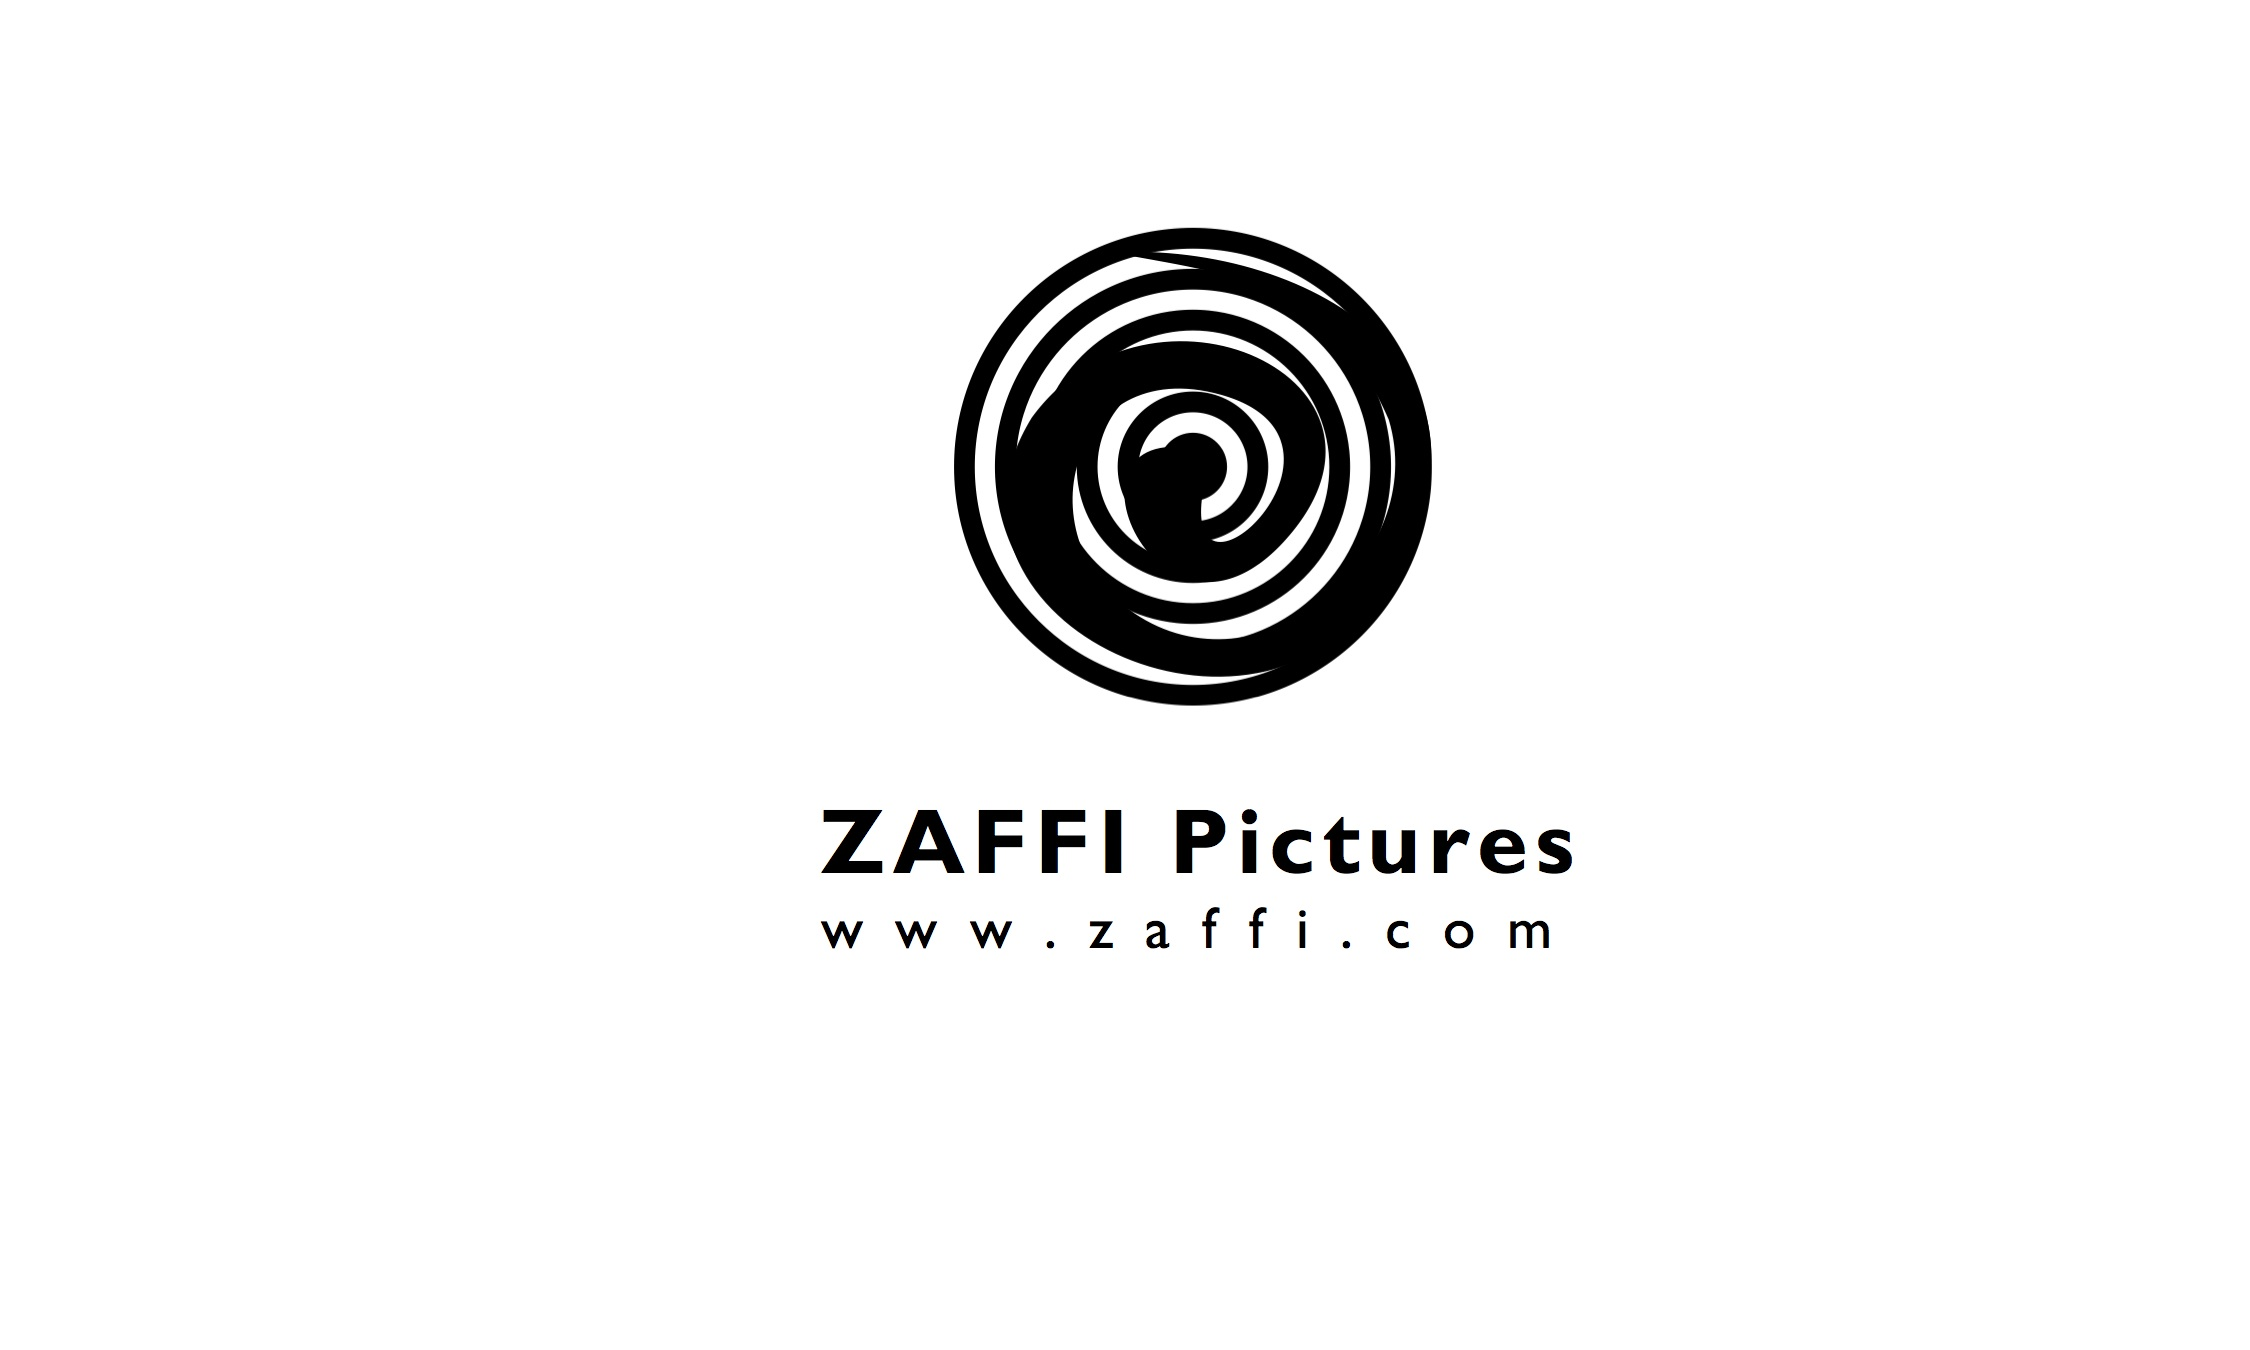 Zaffi Pictures